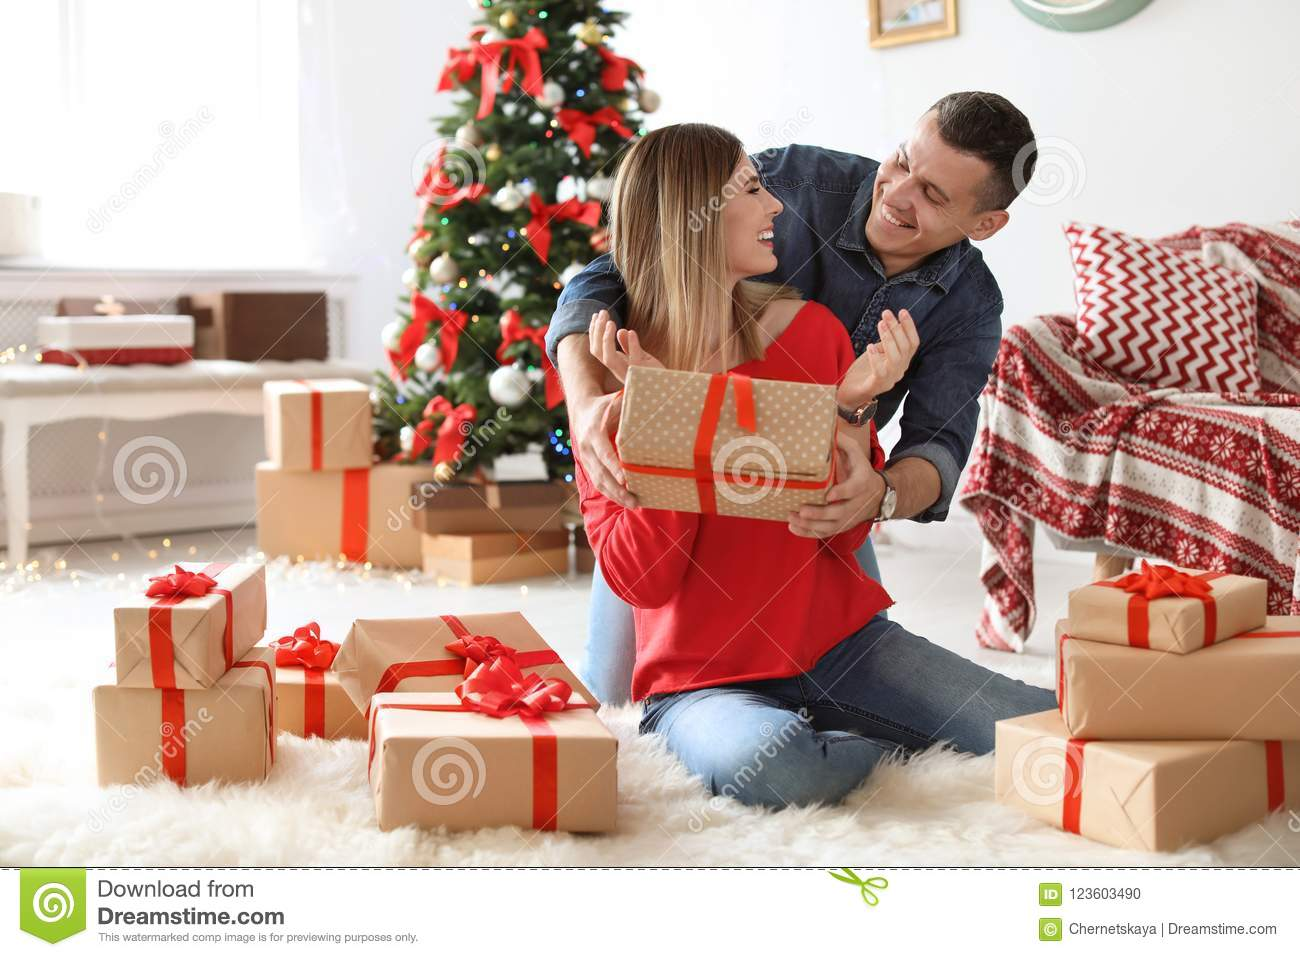 Young man surprising his girlfriend with Christmas gift  sc 1 st  Dreamstime.com & Young Man Surprising His Girlfriend With Christmas Gift Stock Photo ...